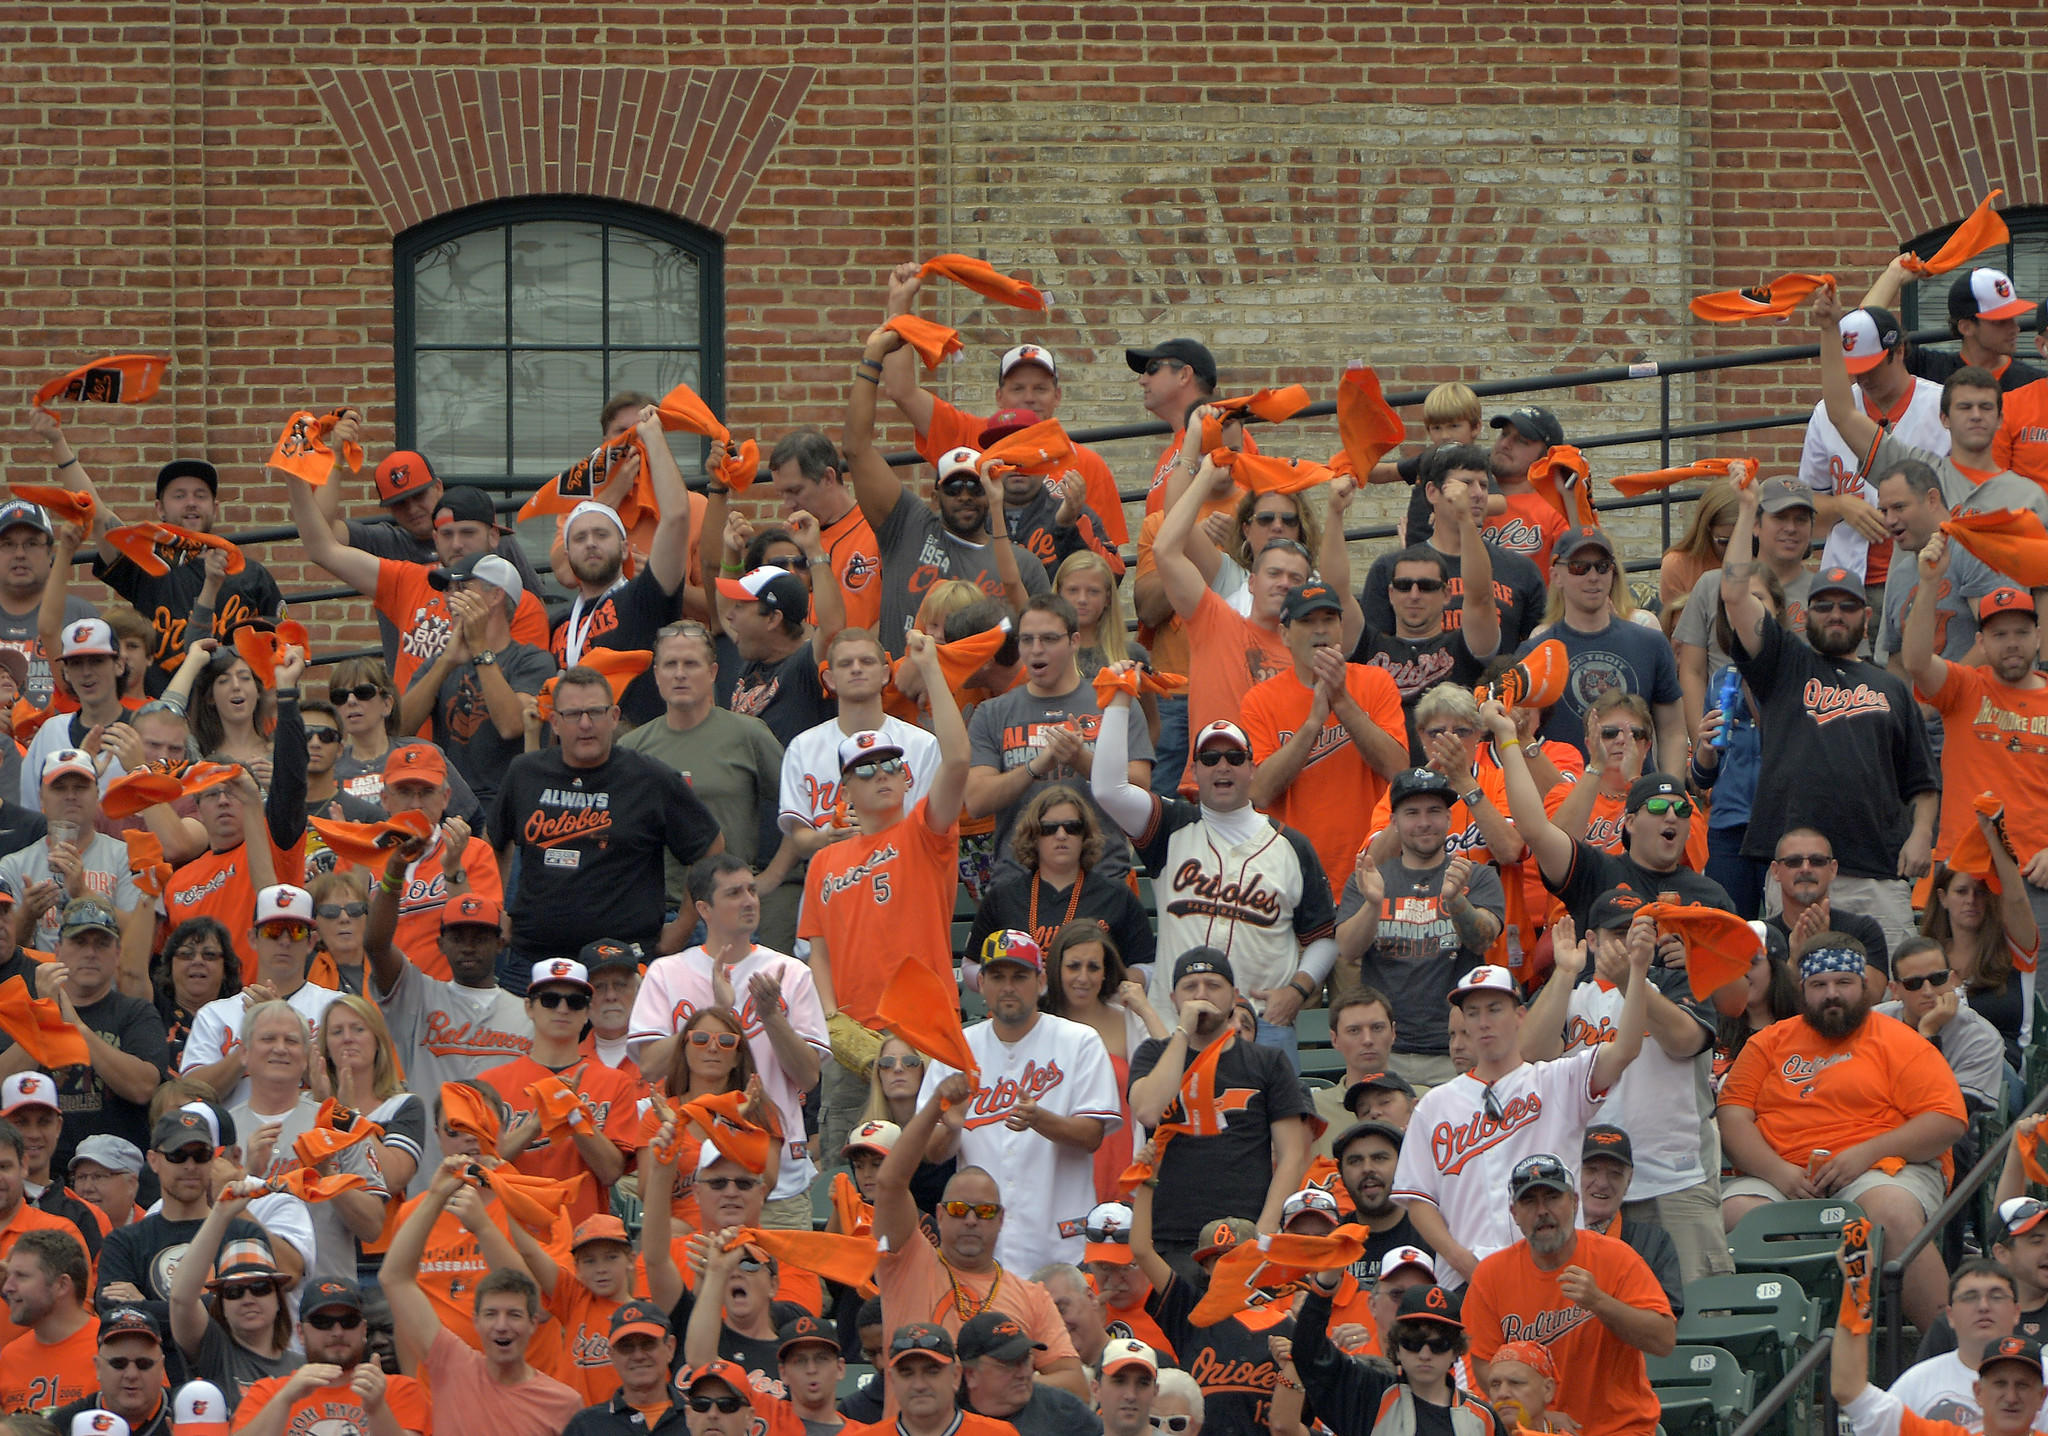 The warehouse provides a backdrop as fans cheer the Baltimore Orioles at game two of the ALDS at Oriole Park at Camden Yards.